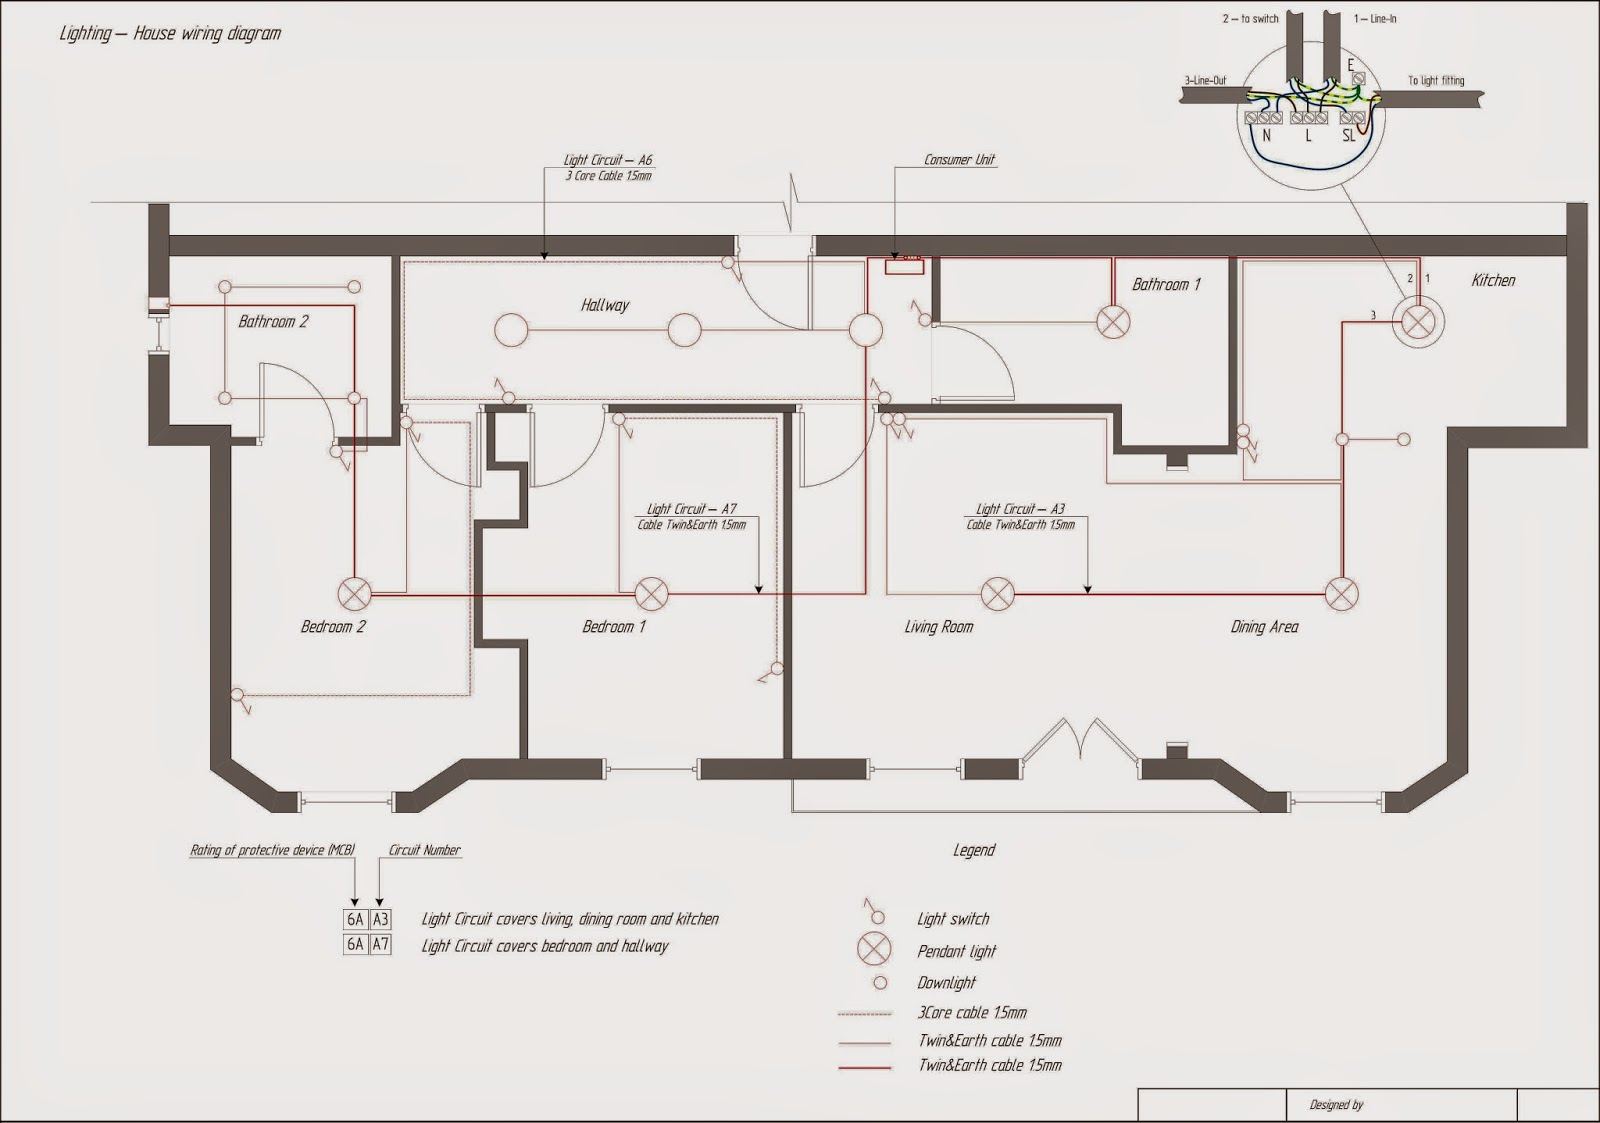 Schematic Wiring Diagram For House from 4.bp.blogspot.com